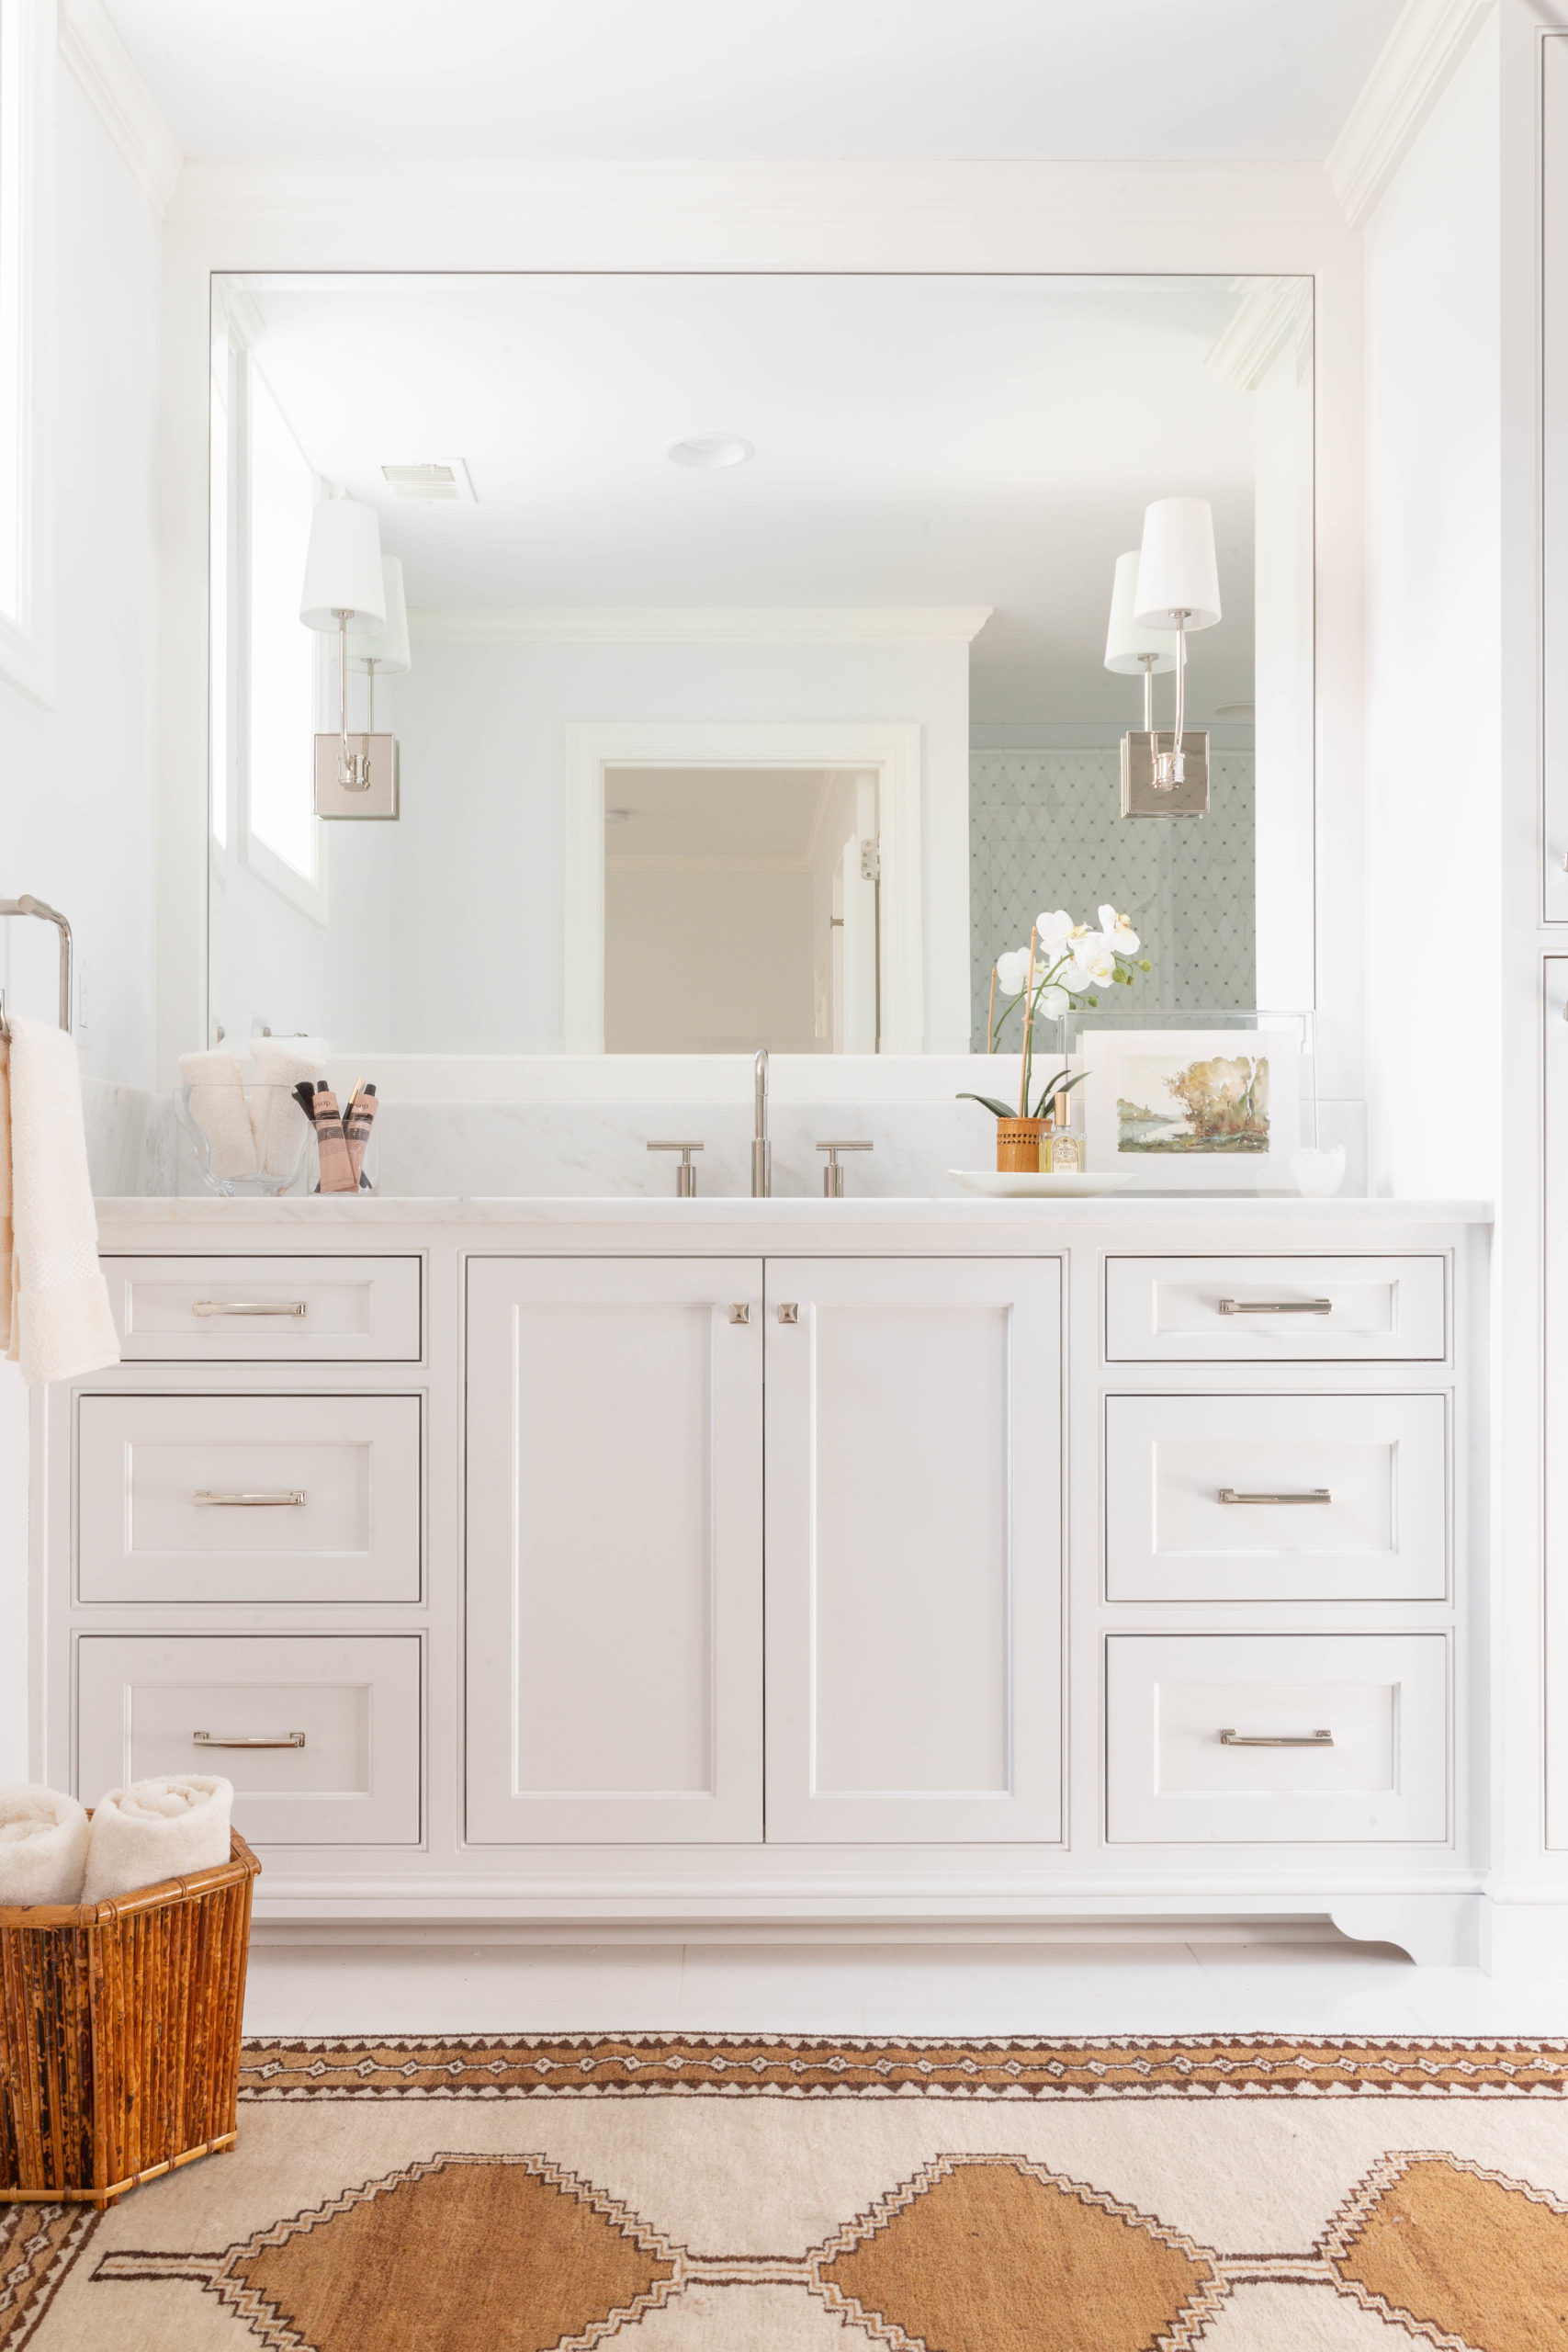 hallbrook lower level bathroom remodel by scovell with folio objects